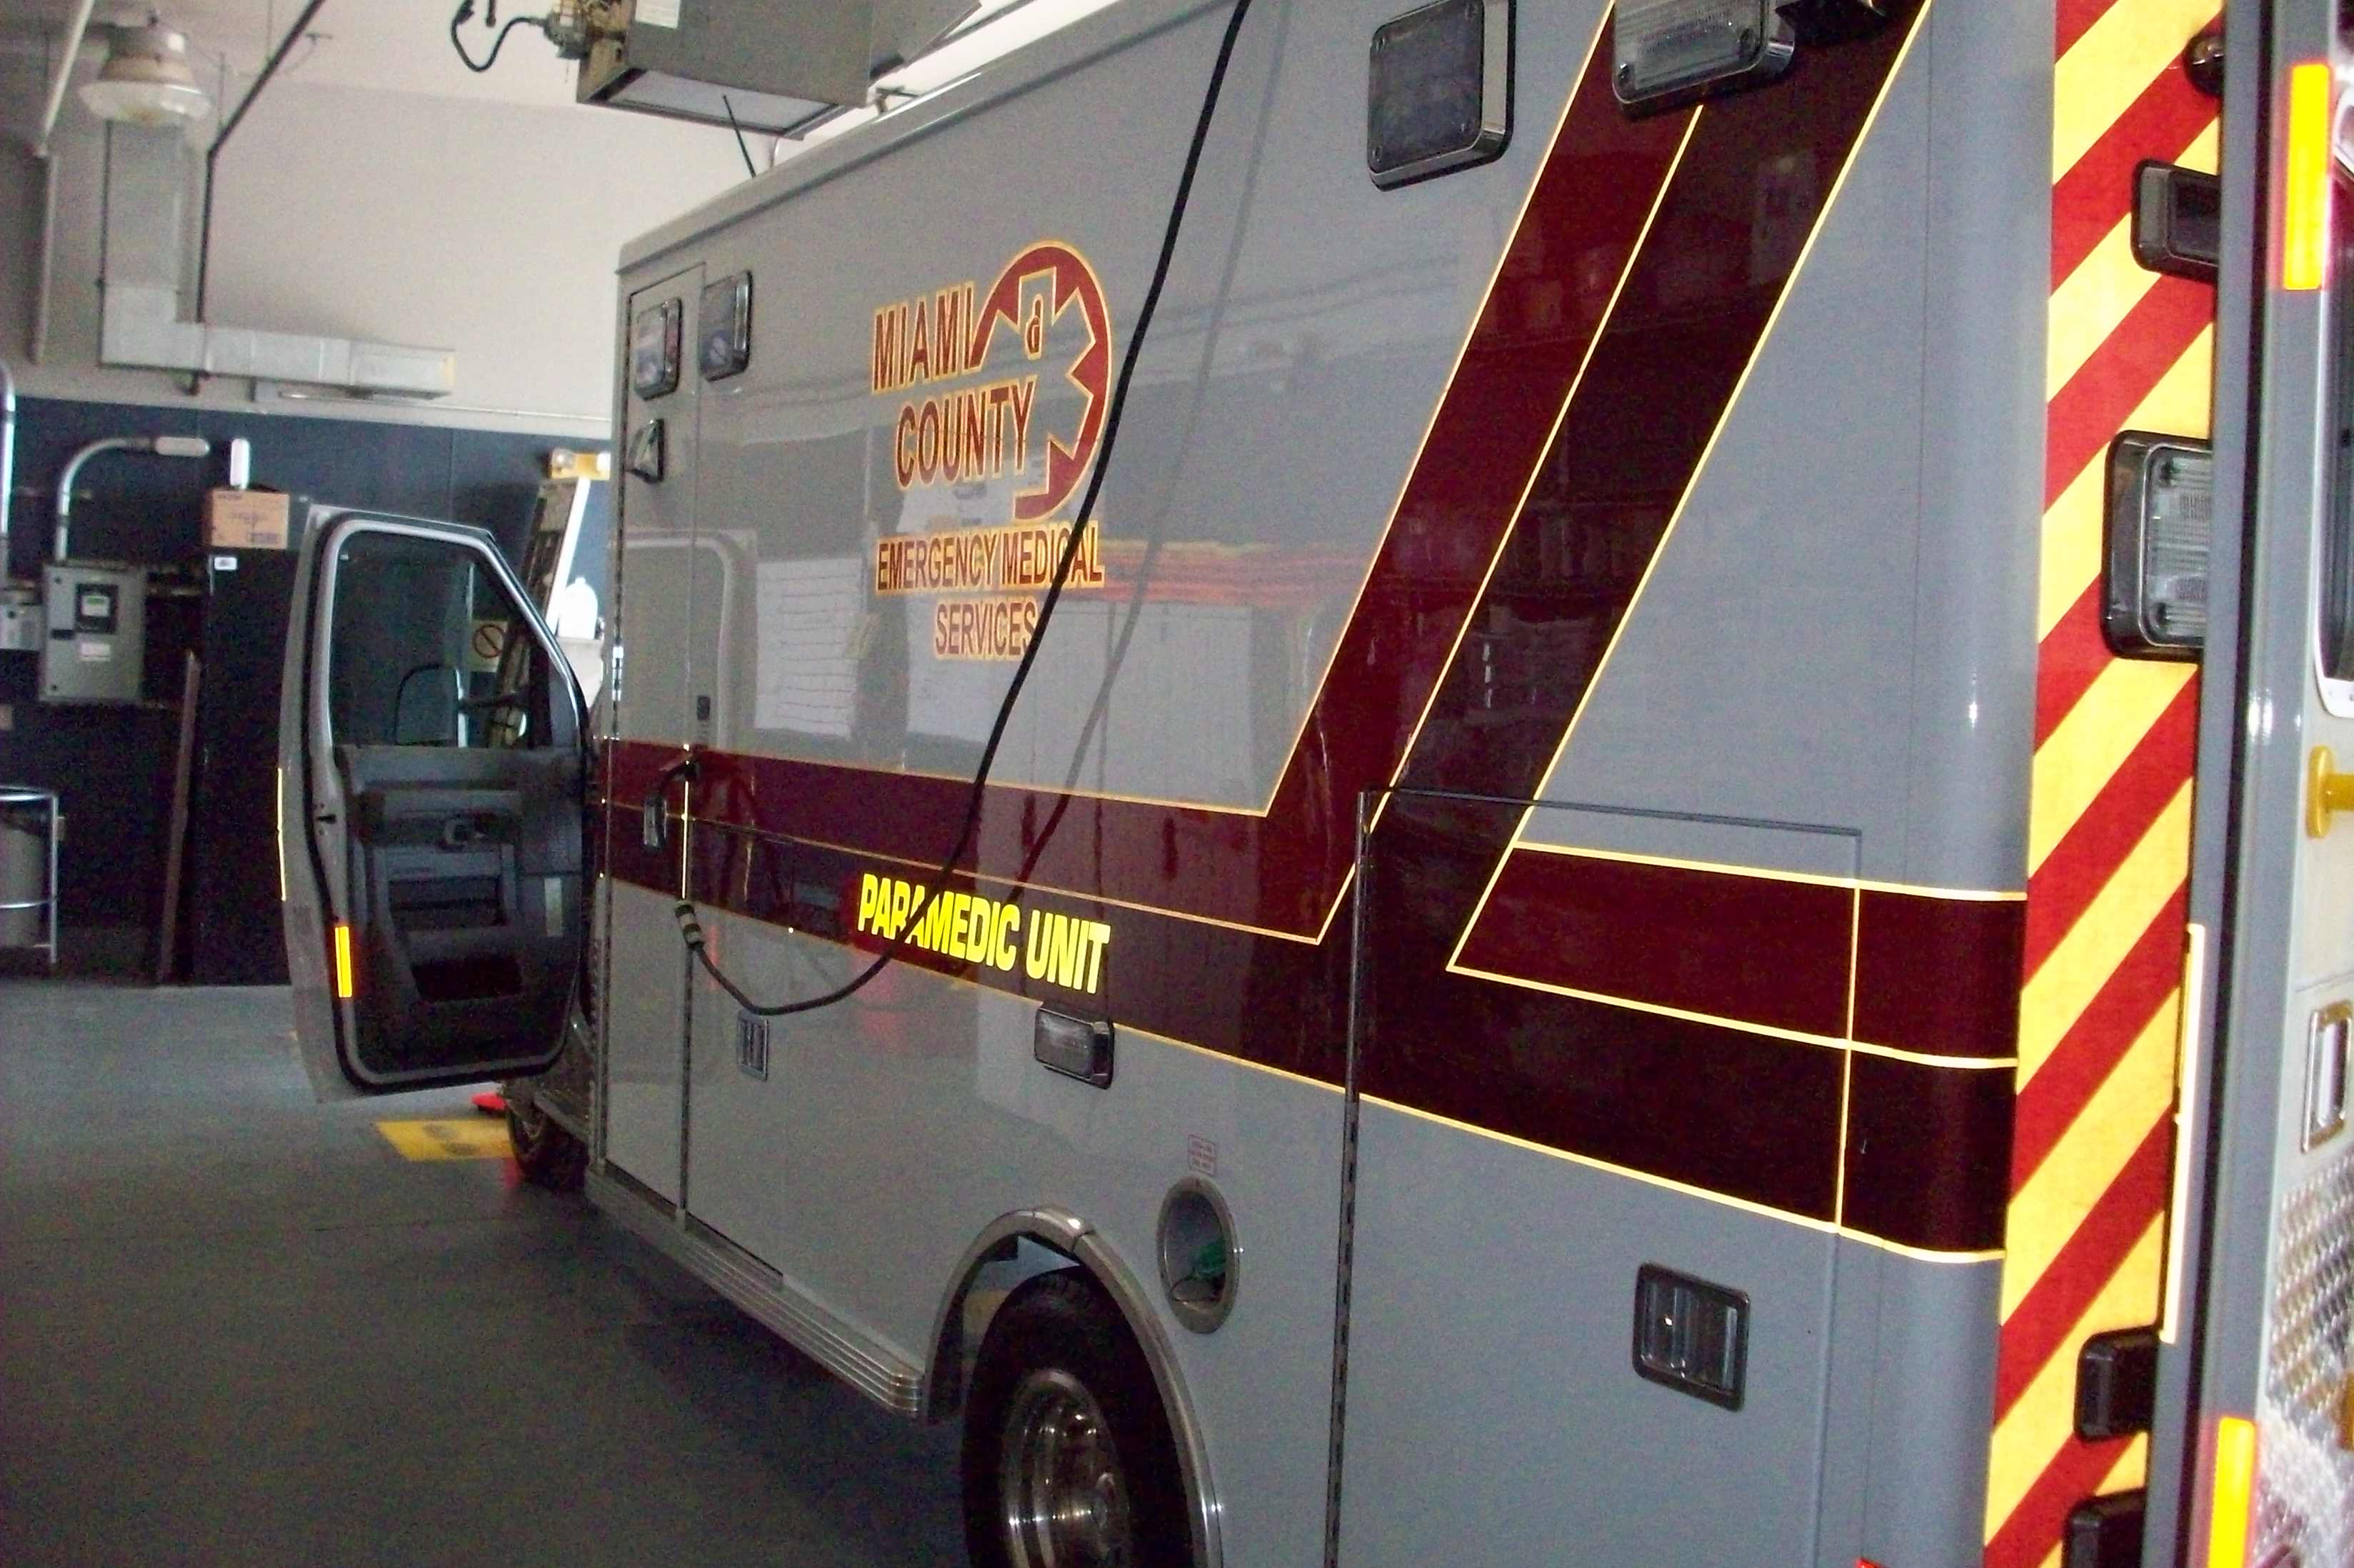 Ambulance Photos